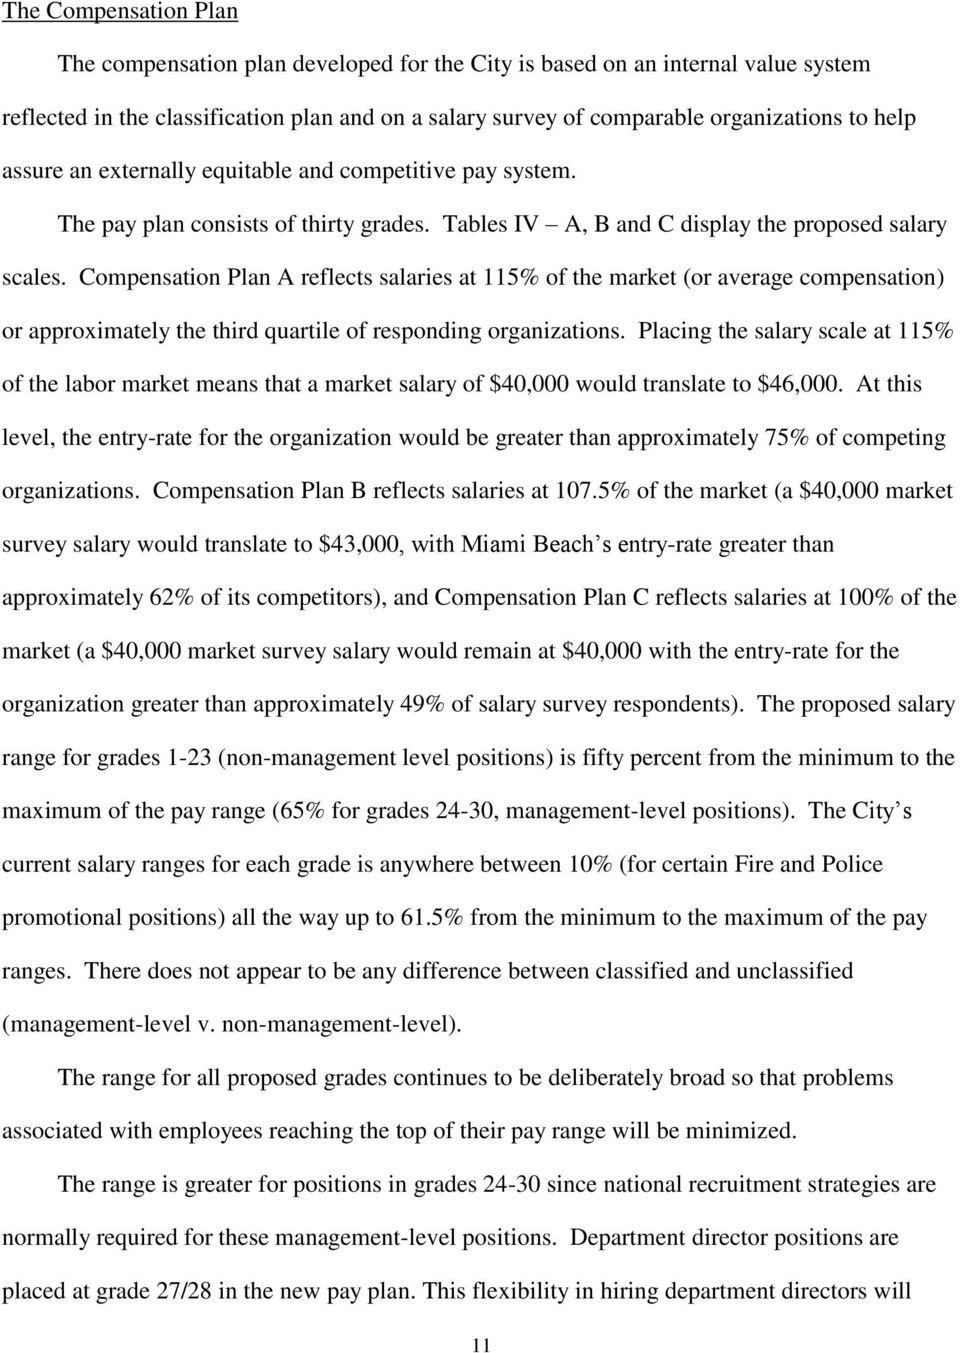 A JOB CLASSIFICATION AND COMPENSATION PLAN FOR THE CITY OF